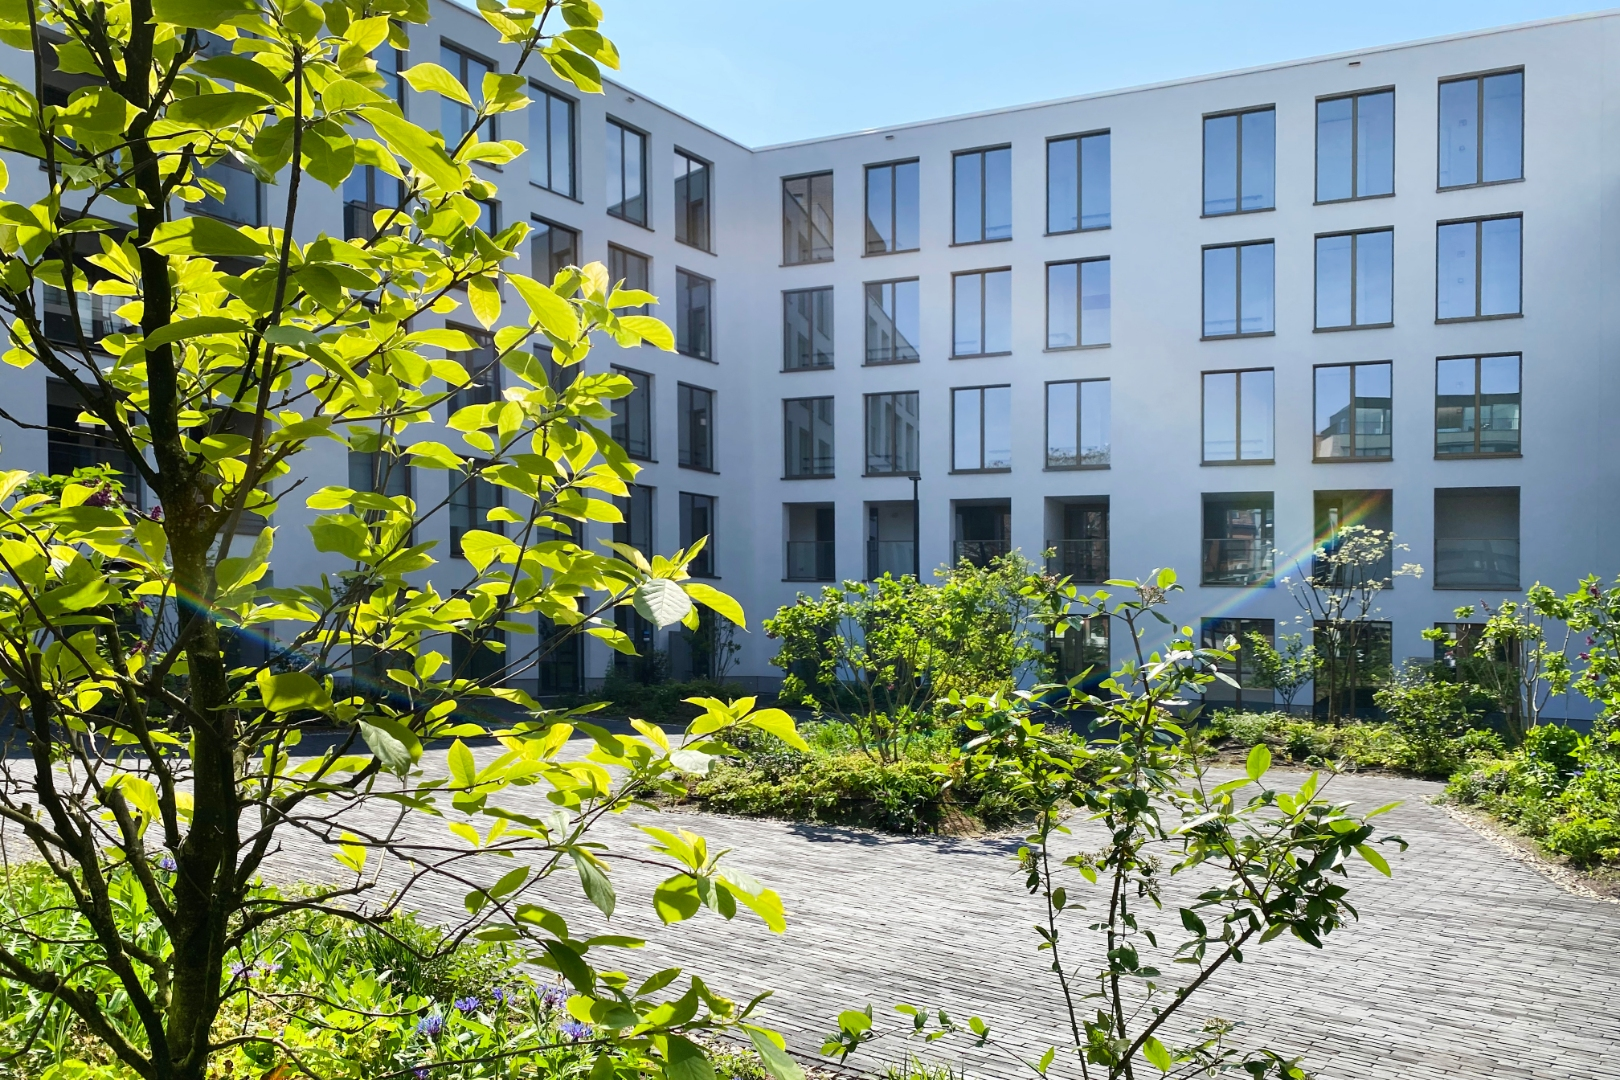 FOR SALE AT LANDBERGH: Appartments in Ghent